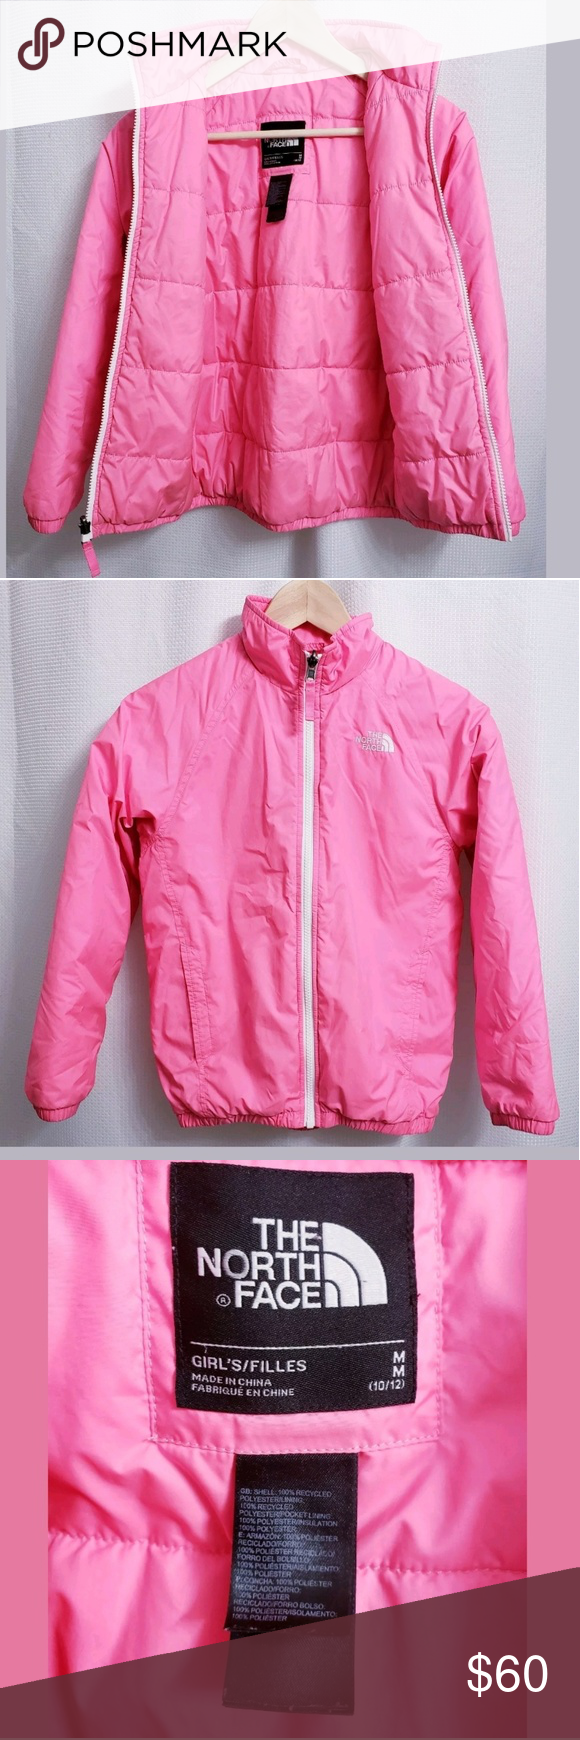 The North Face Hot Pink Puffer Jacket Sz Medium 10 This Is A The North Face Hot Pink Puffer Jacket Sz Medium 10 North Face Jacket Clothes Design Puffer Jackets [ 1740 x 580 Pixel ]